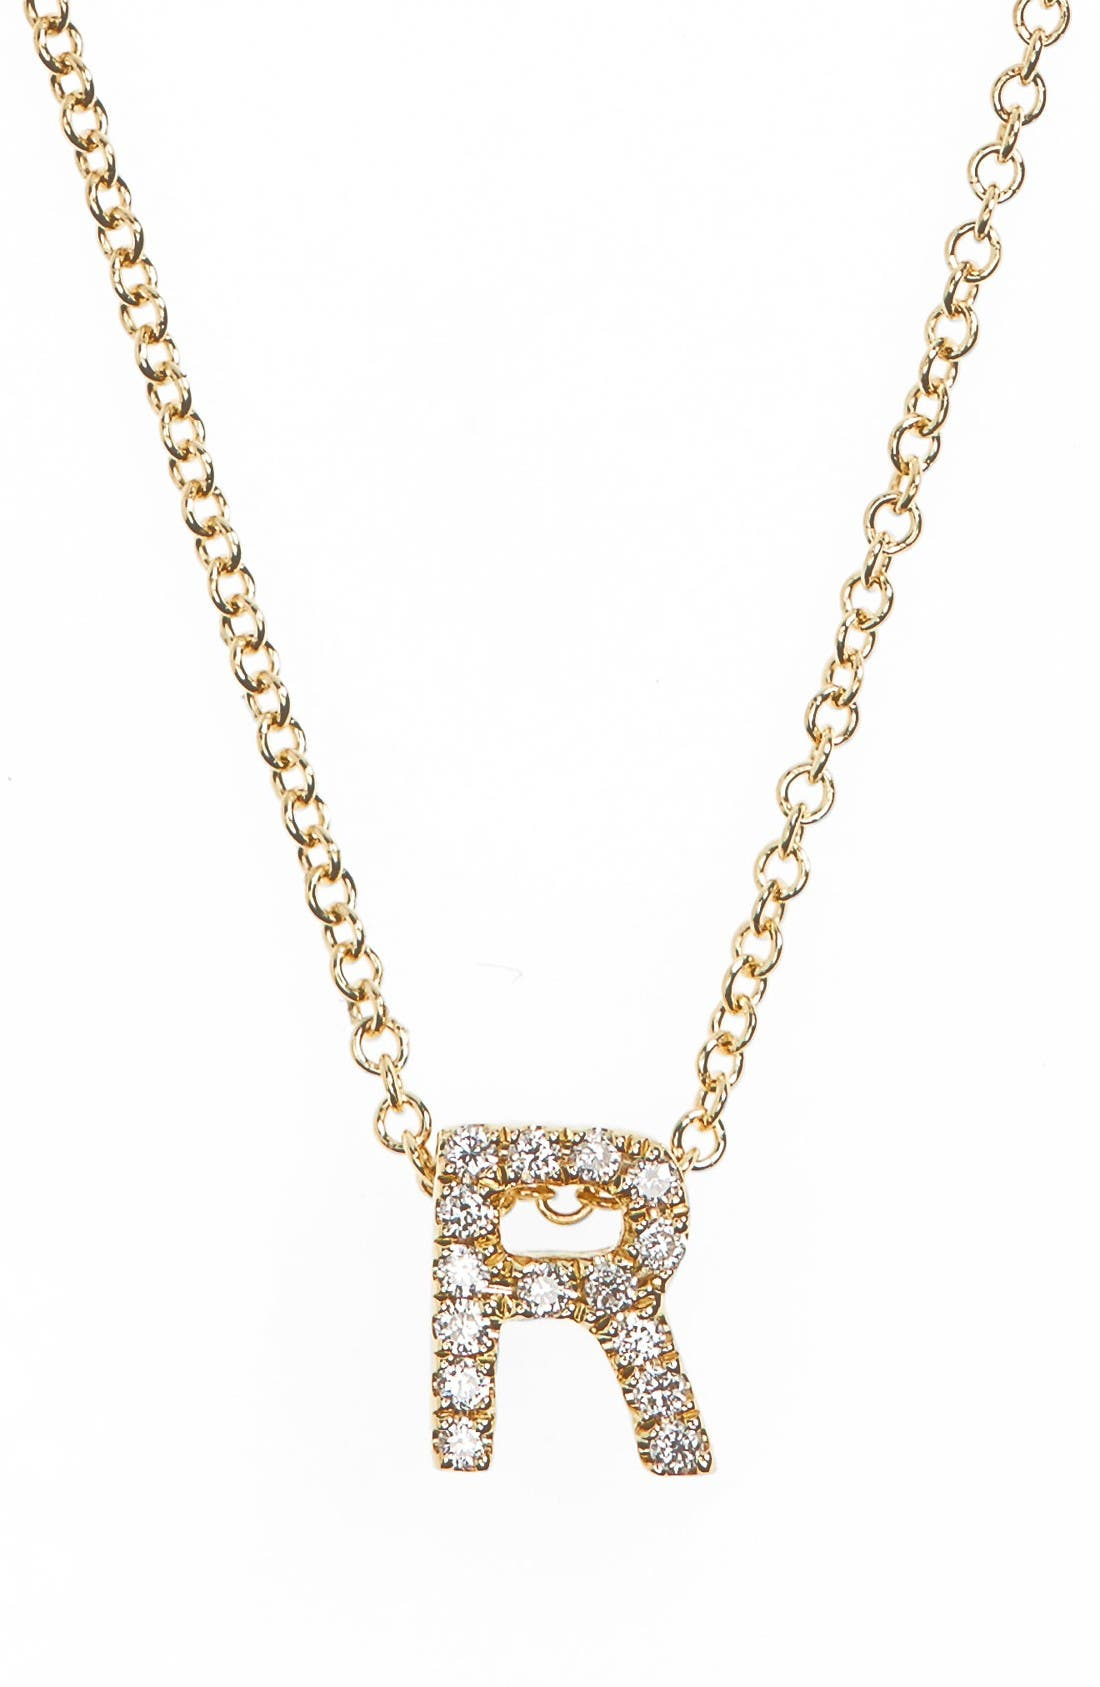 18k Gold Pavé Diamond Initial Pendant Necklace,                         Main,                         color, Yellow Gold - R